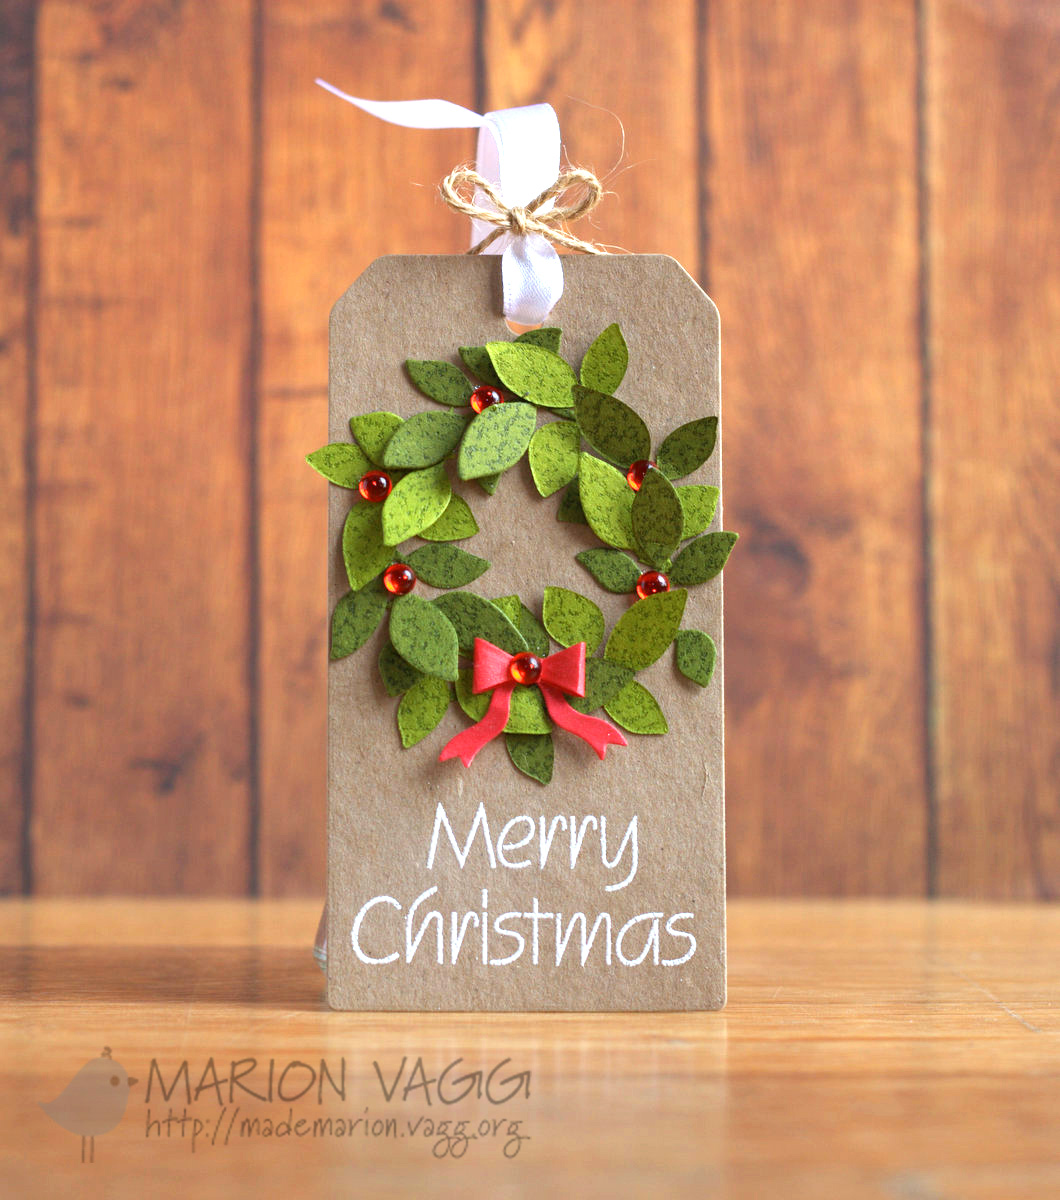 Merry Christmas | Marion Vagg